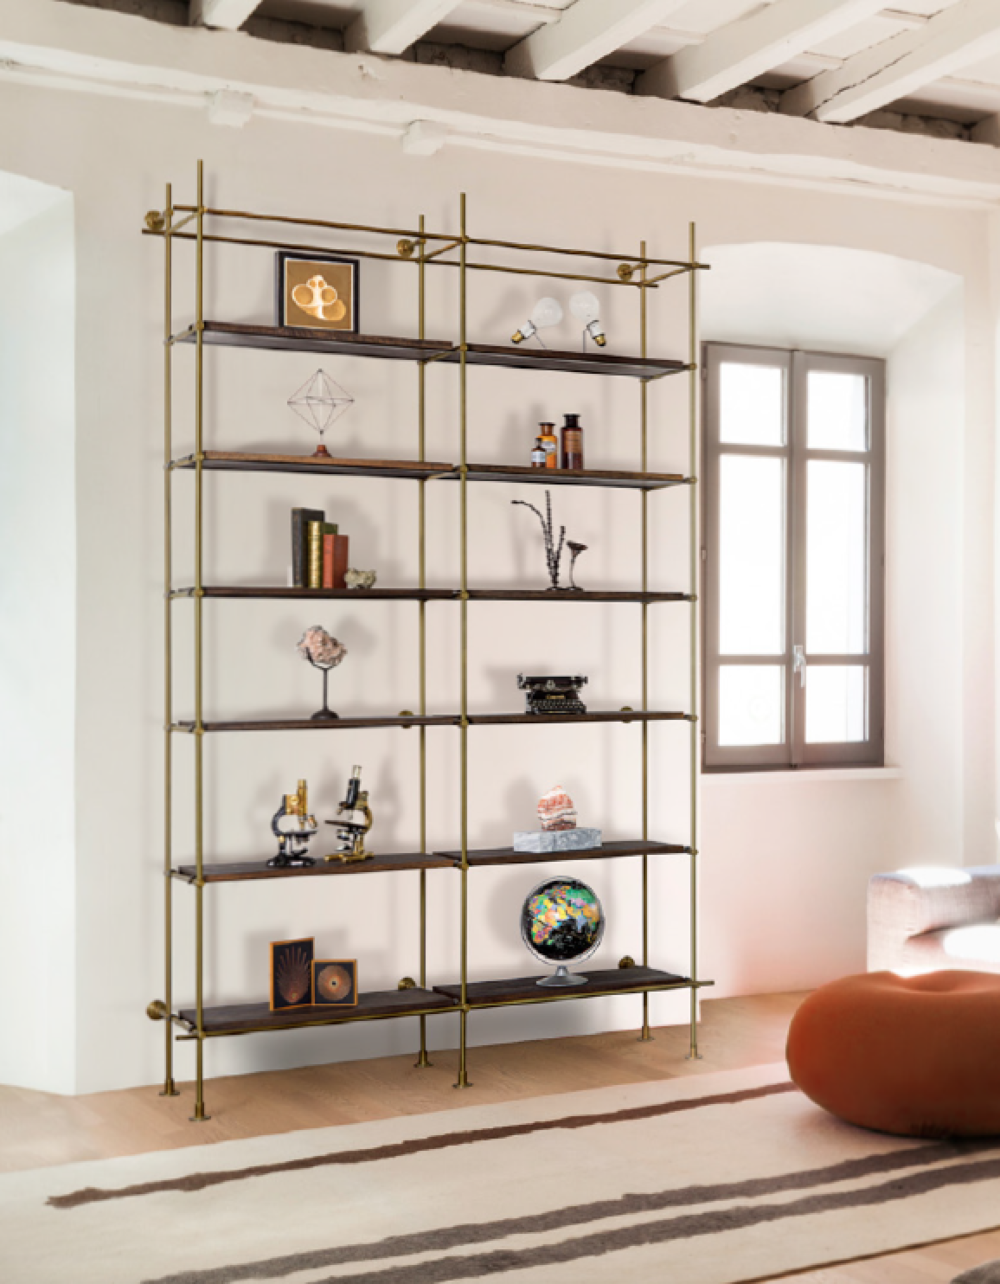 Pantry Küche Bauhaus Adjustable Shelving Systems